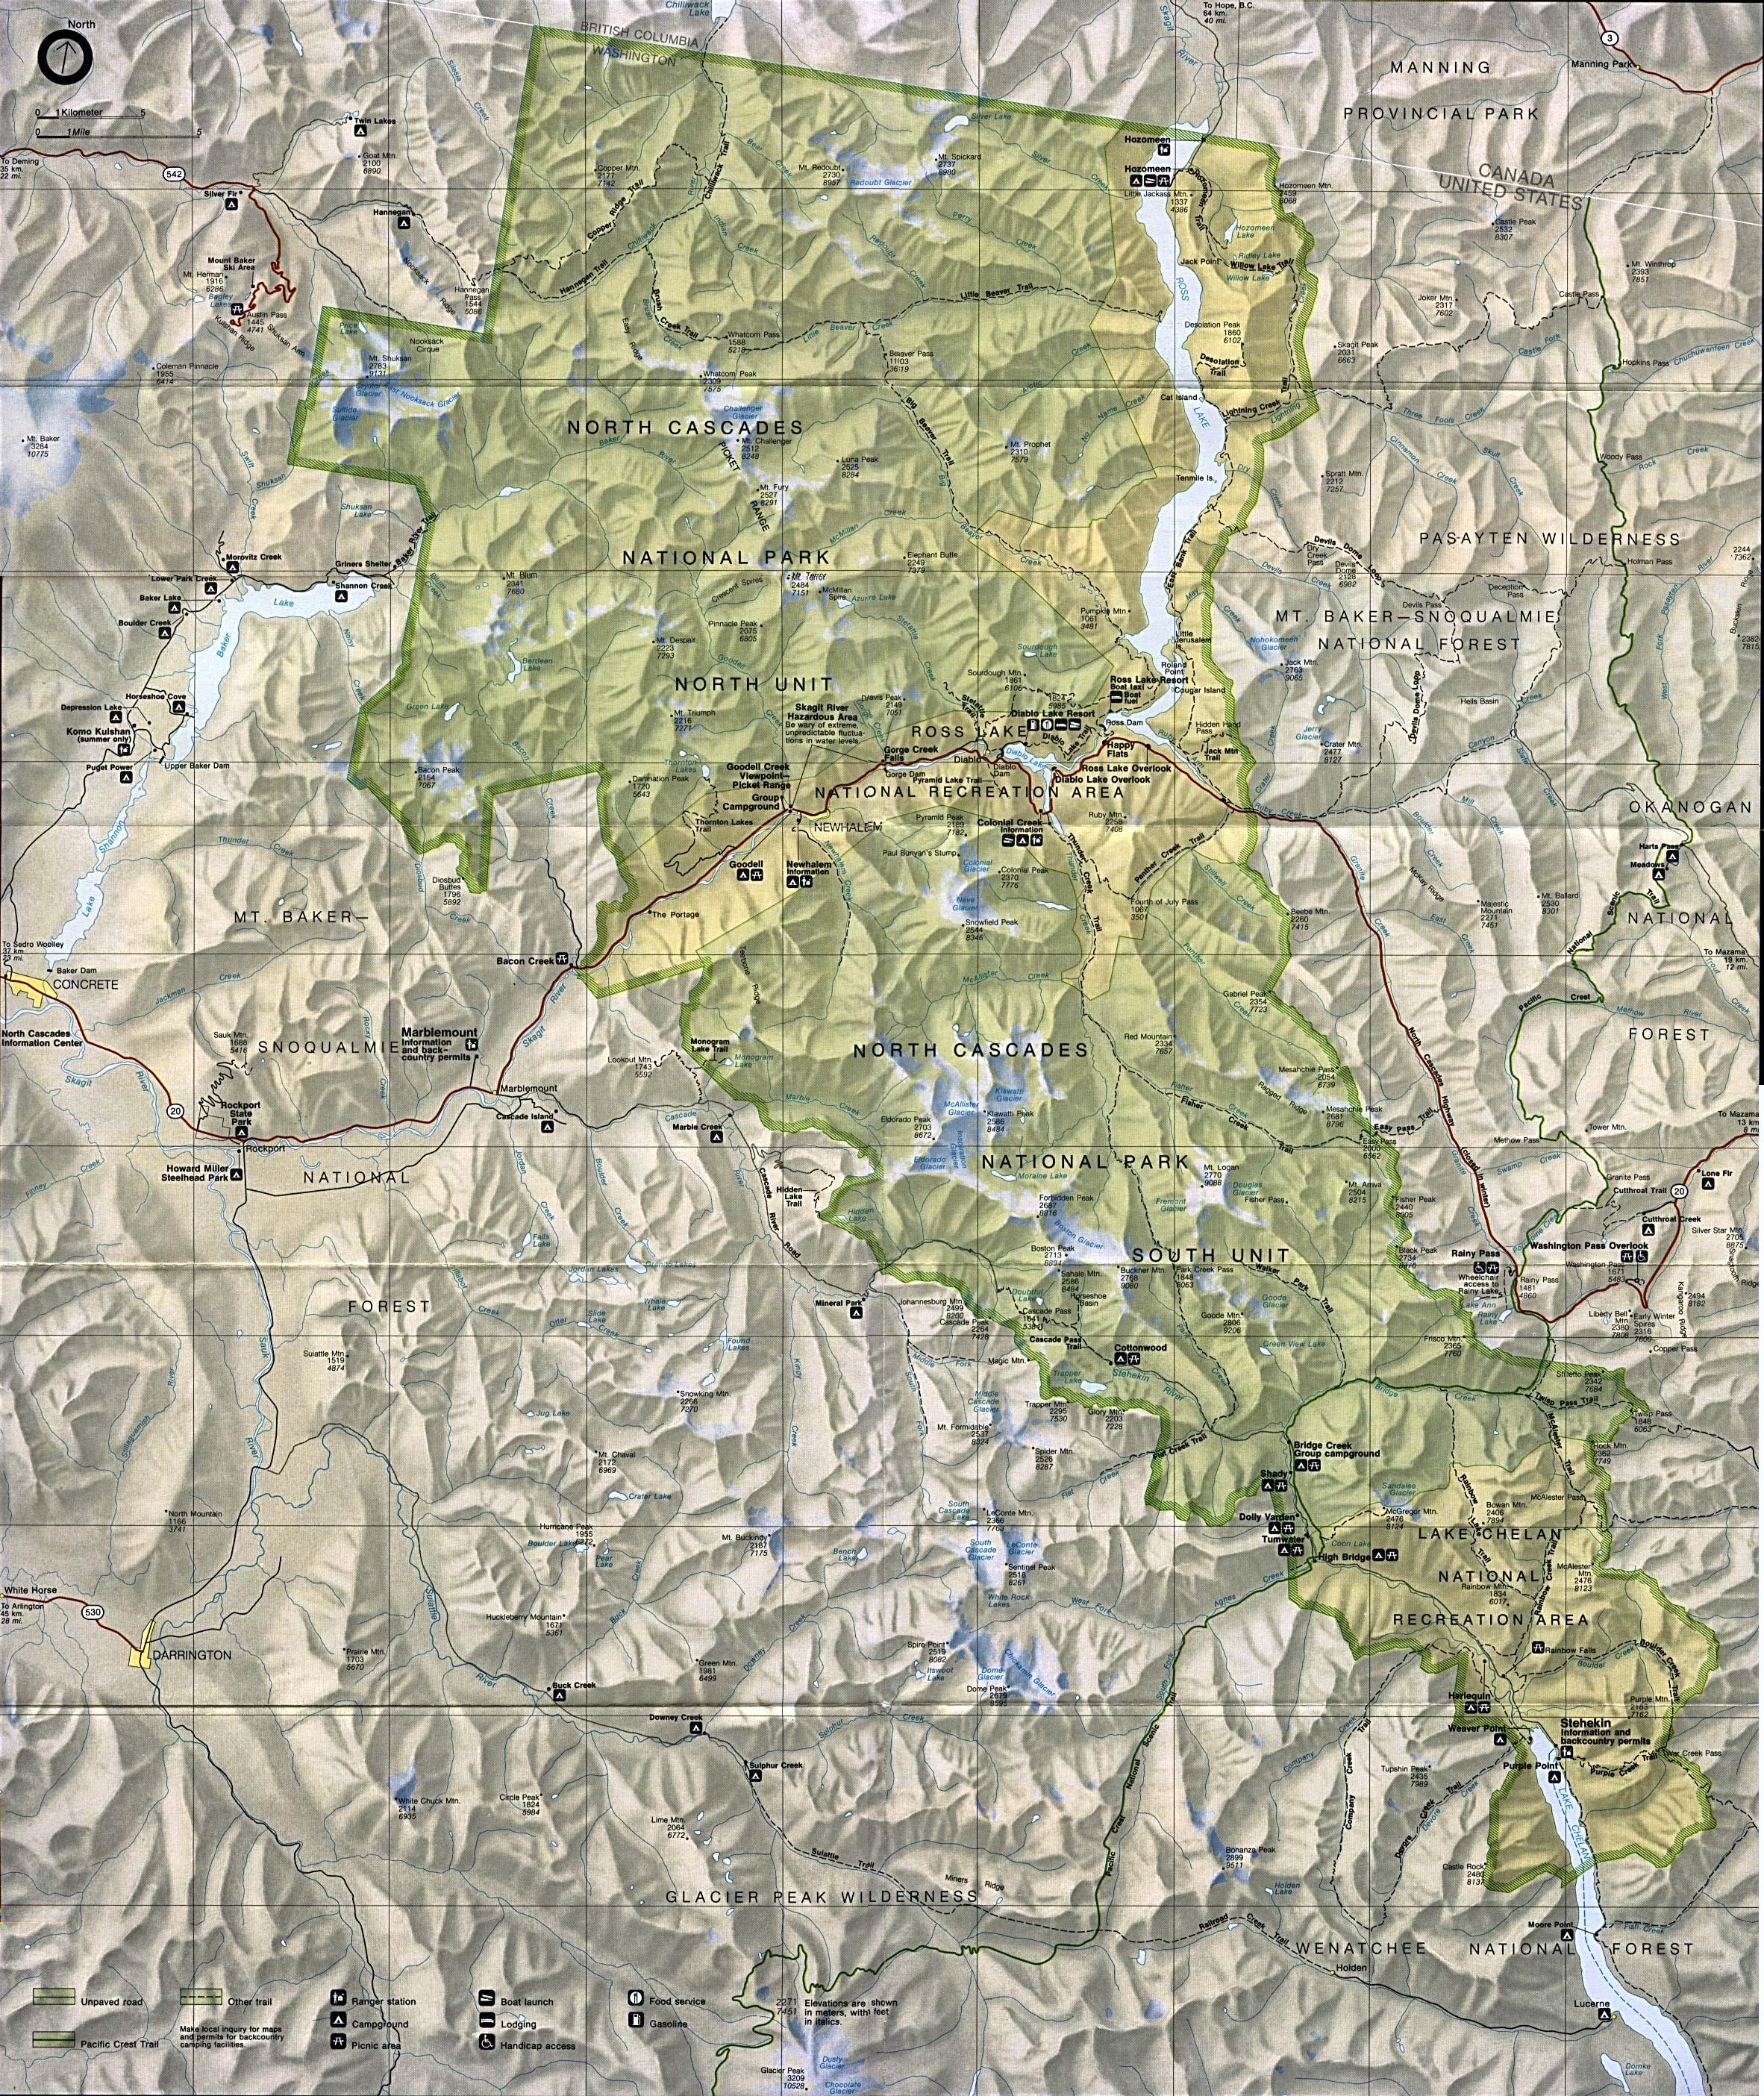 Maps of United States National Parks, Monuments and Historic Sites North Cascades National Park [Washington] (Park Map) (1MB)